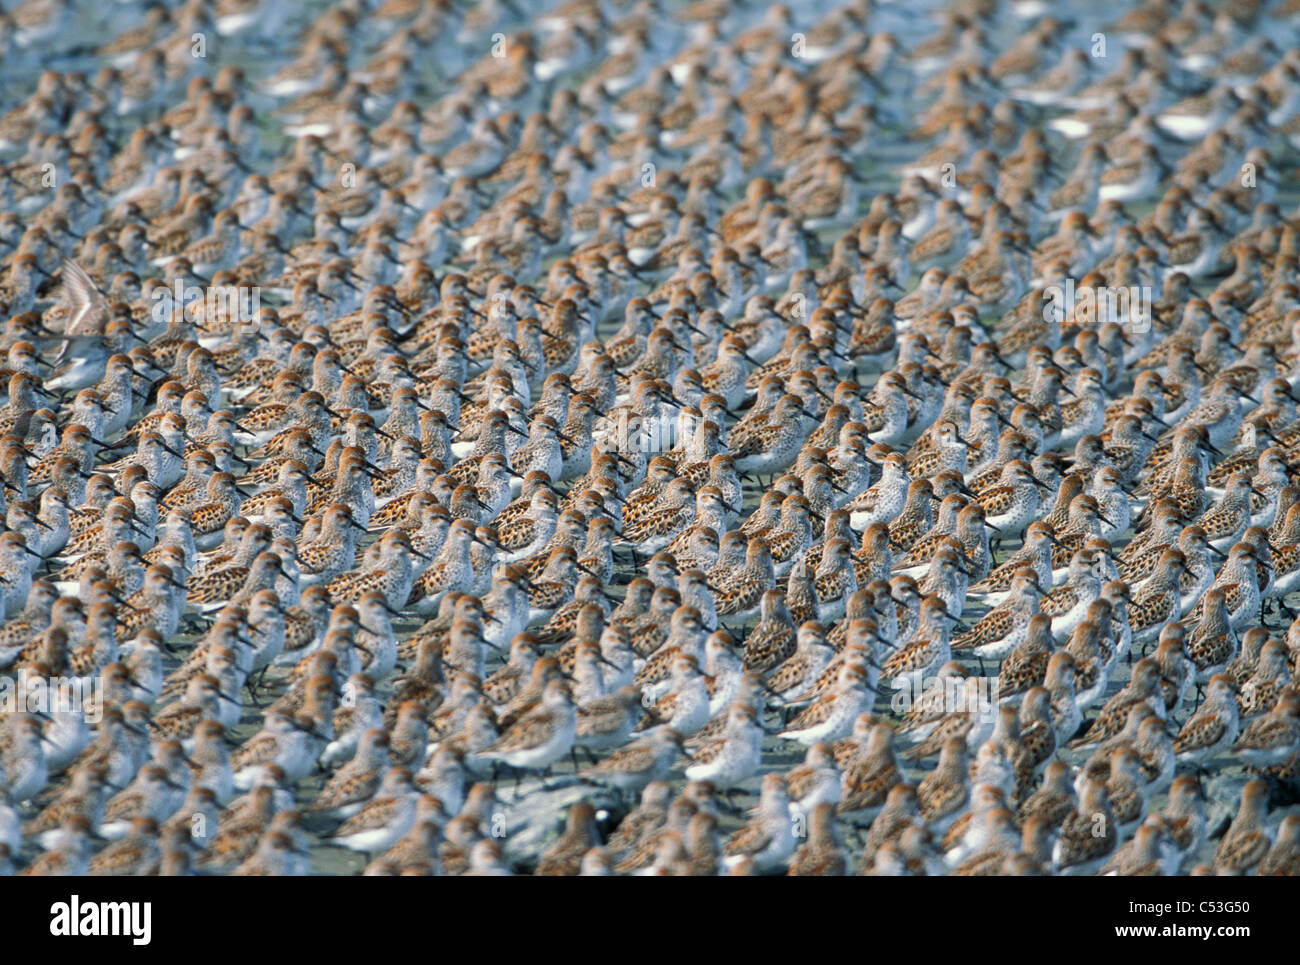 Large flock of Western Sandpipers on the mud flats of the Copper River Delta,Southcentral Alaska, Spring - Stock Image